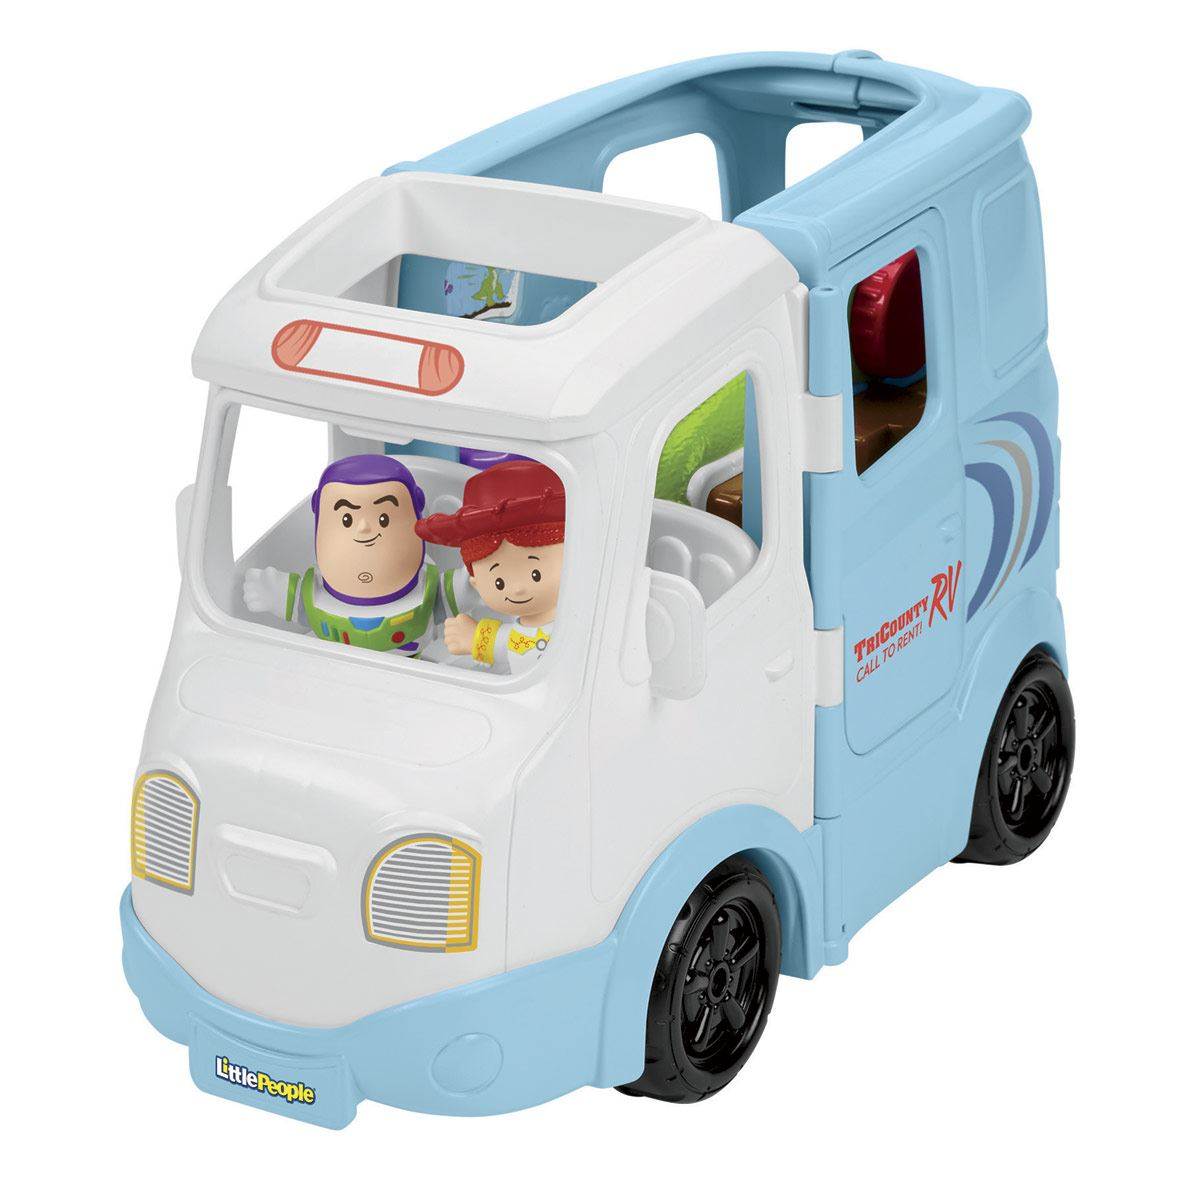 Fisher Price Little People Toy Story 4 Camper